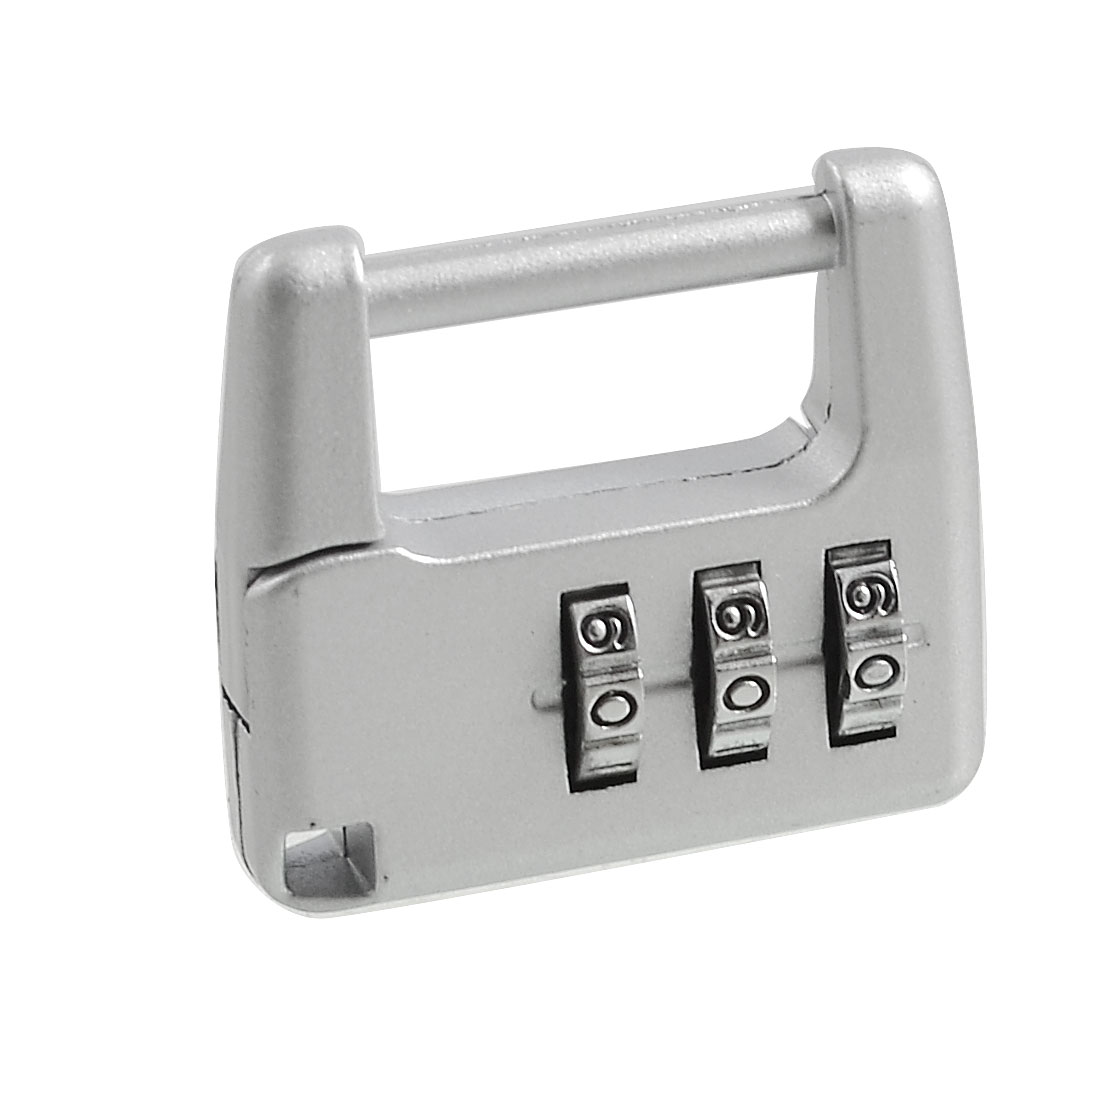 Travel Luggage Suitcase Lock 3 Digits Combination Padlock Silver Tone